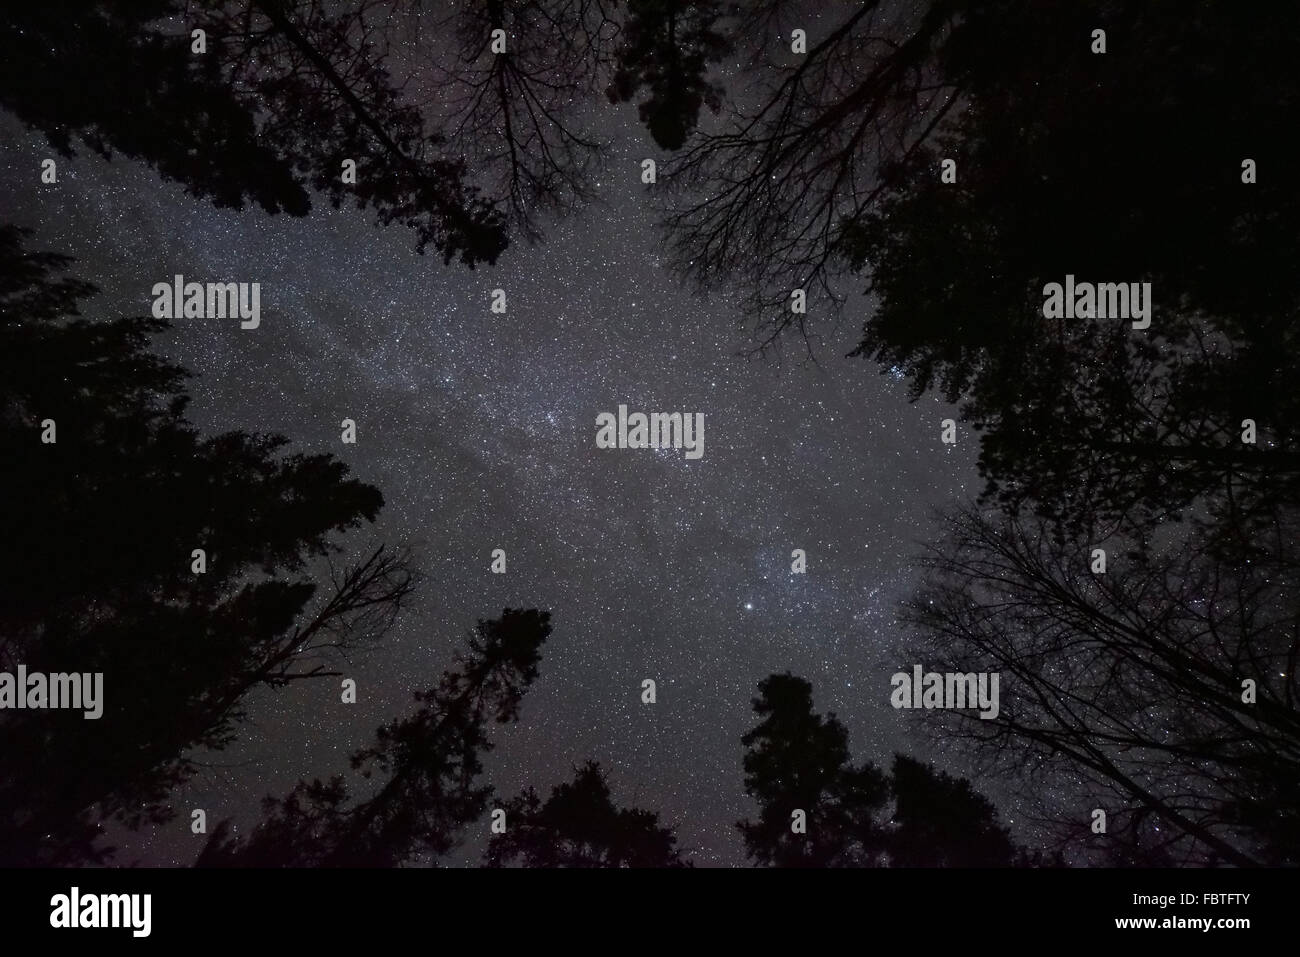 Straight up view of the many stars Milky Way Galaxy through a forest of trees.  The night sky never looked better. - Stock Image